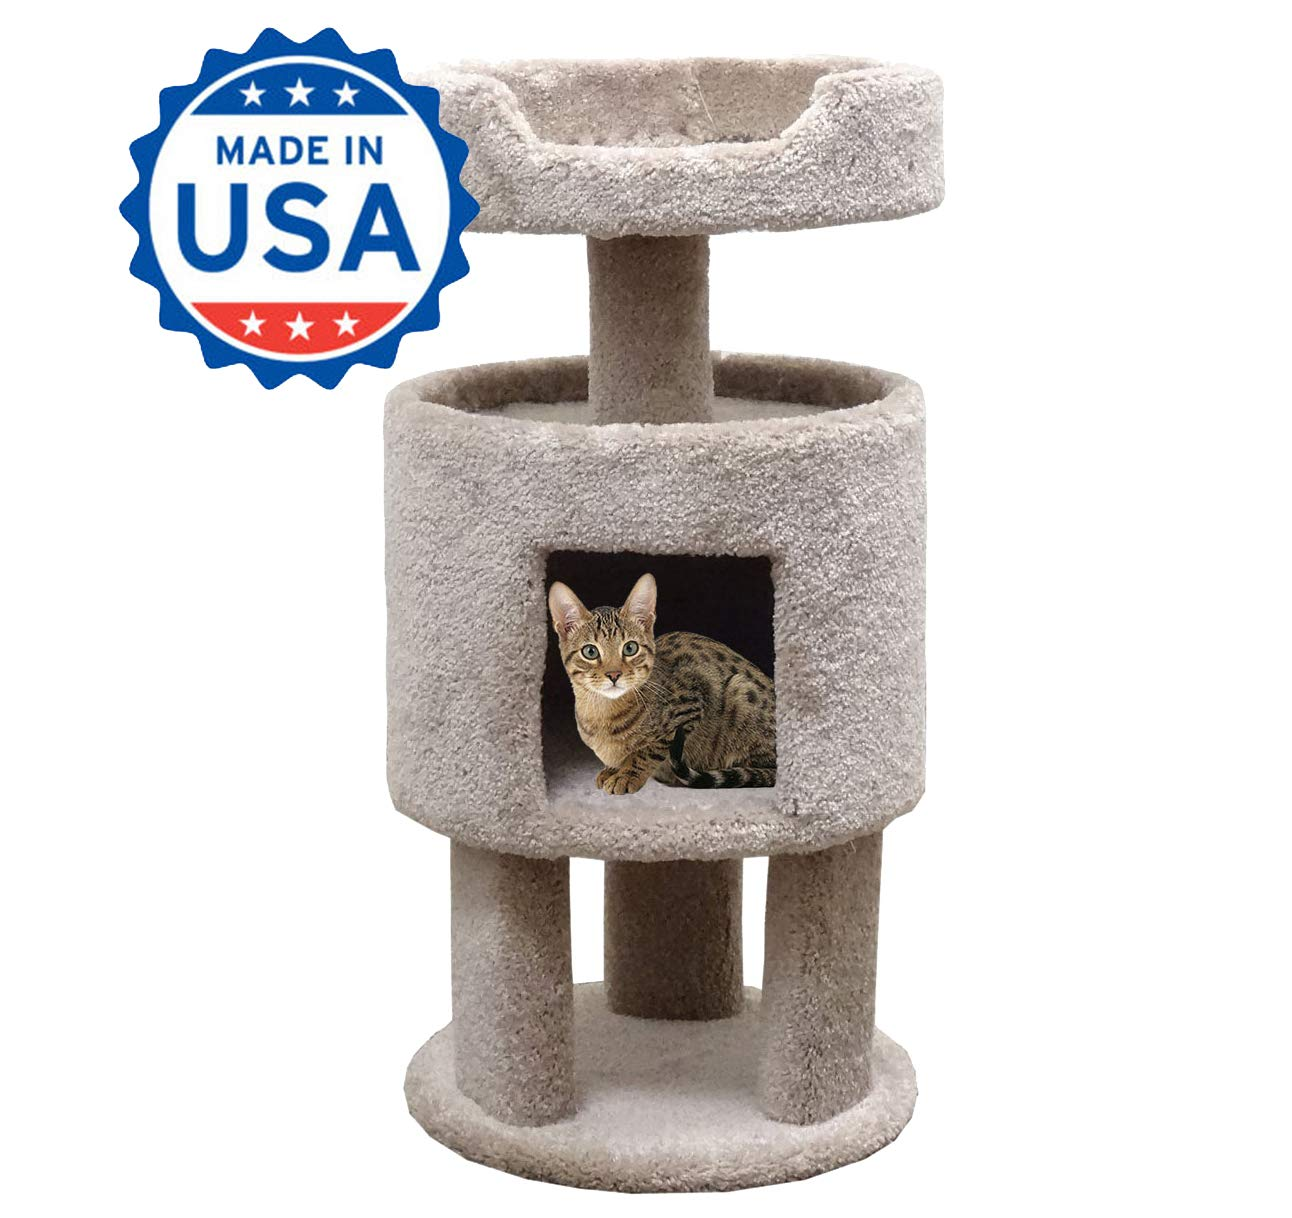 CozyCatFurniture Wood Carpeted Kitty Condo with Perch Cat Condo, Beige Carpet by CozyCatFurniture